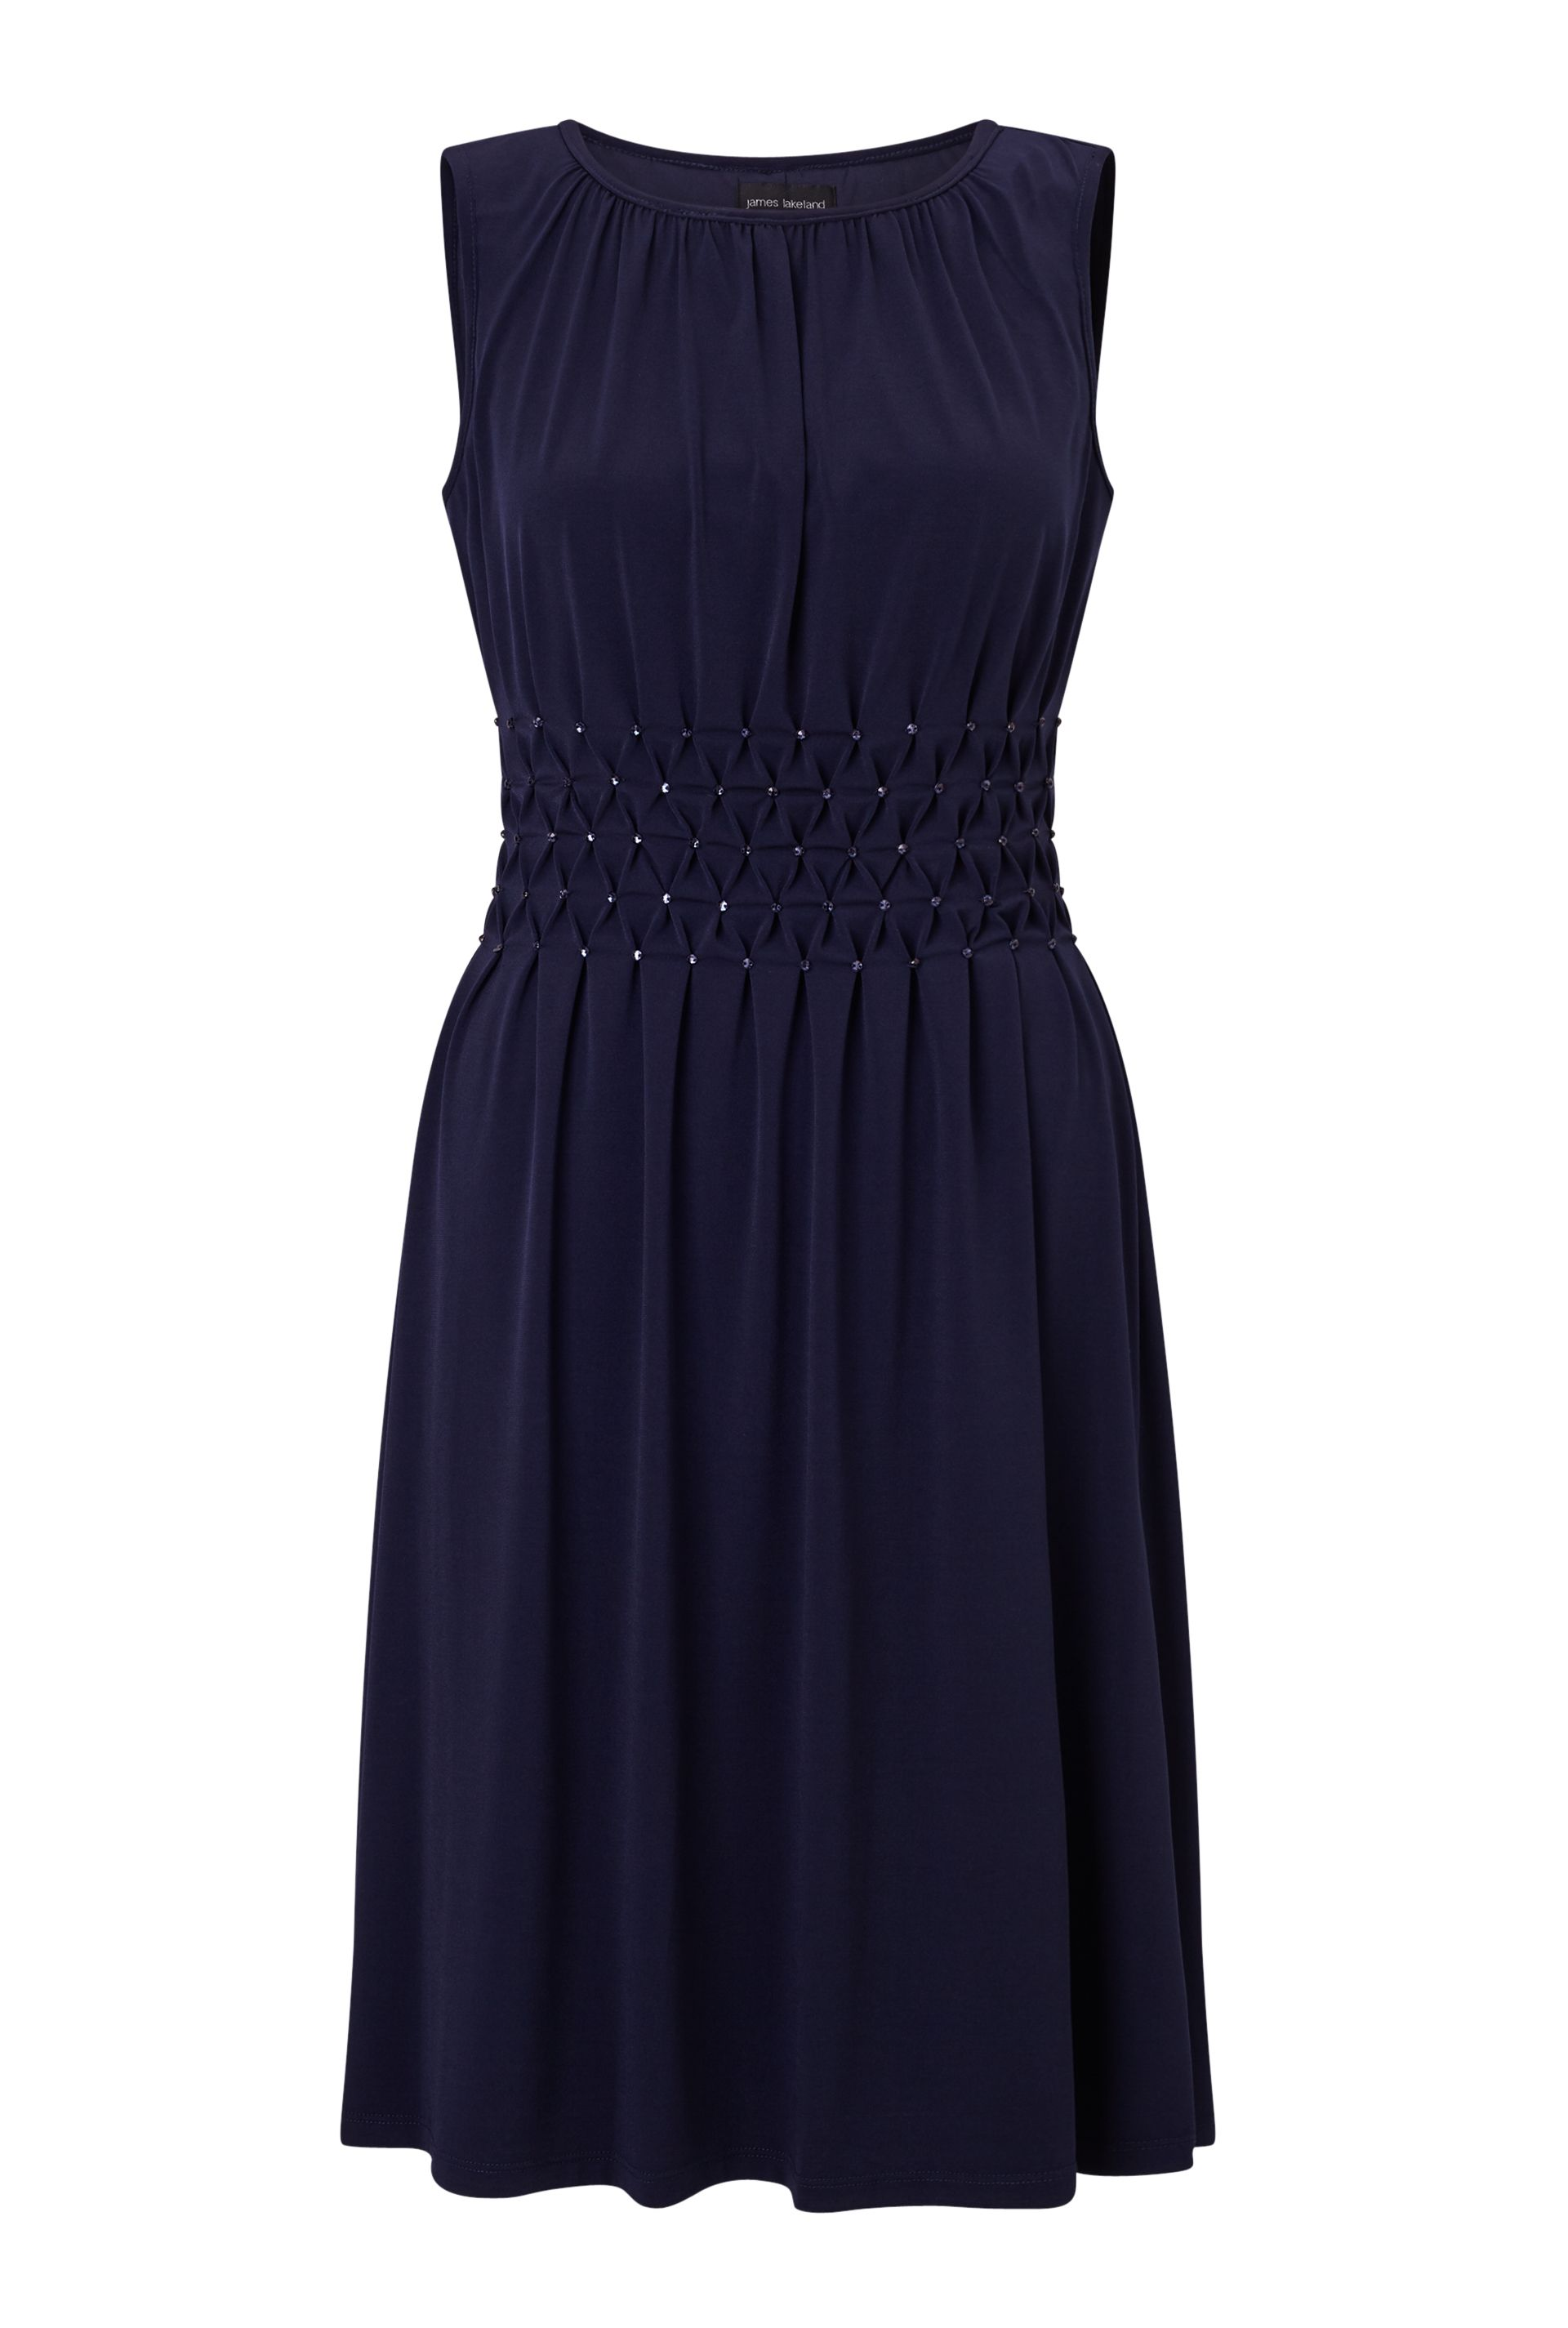 James Lakeland Sleeveless Diamantes Dress, Blue